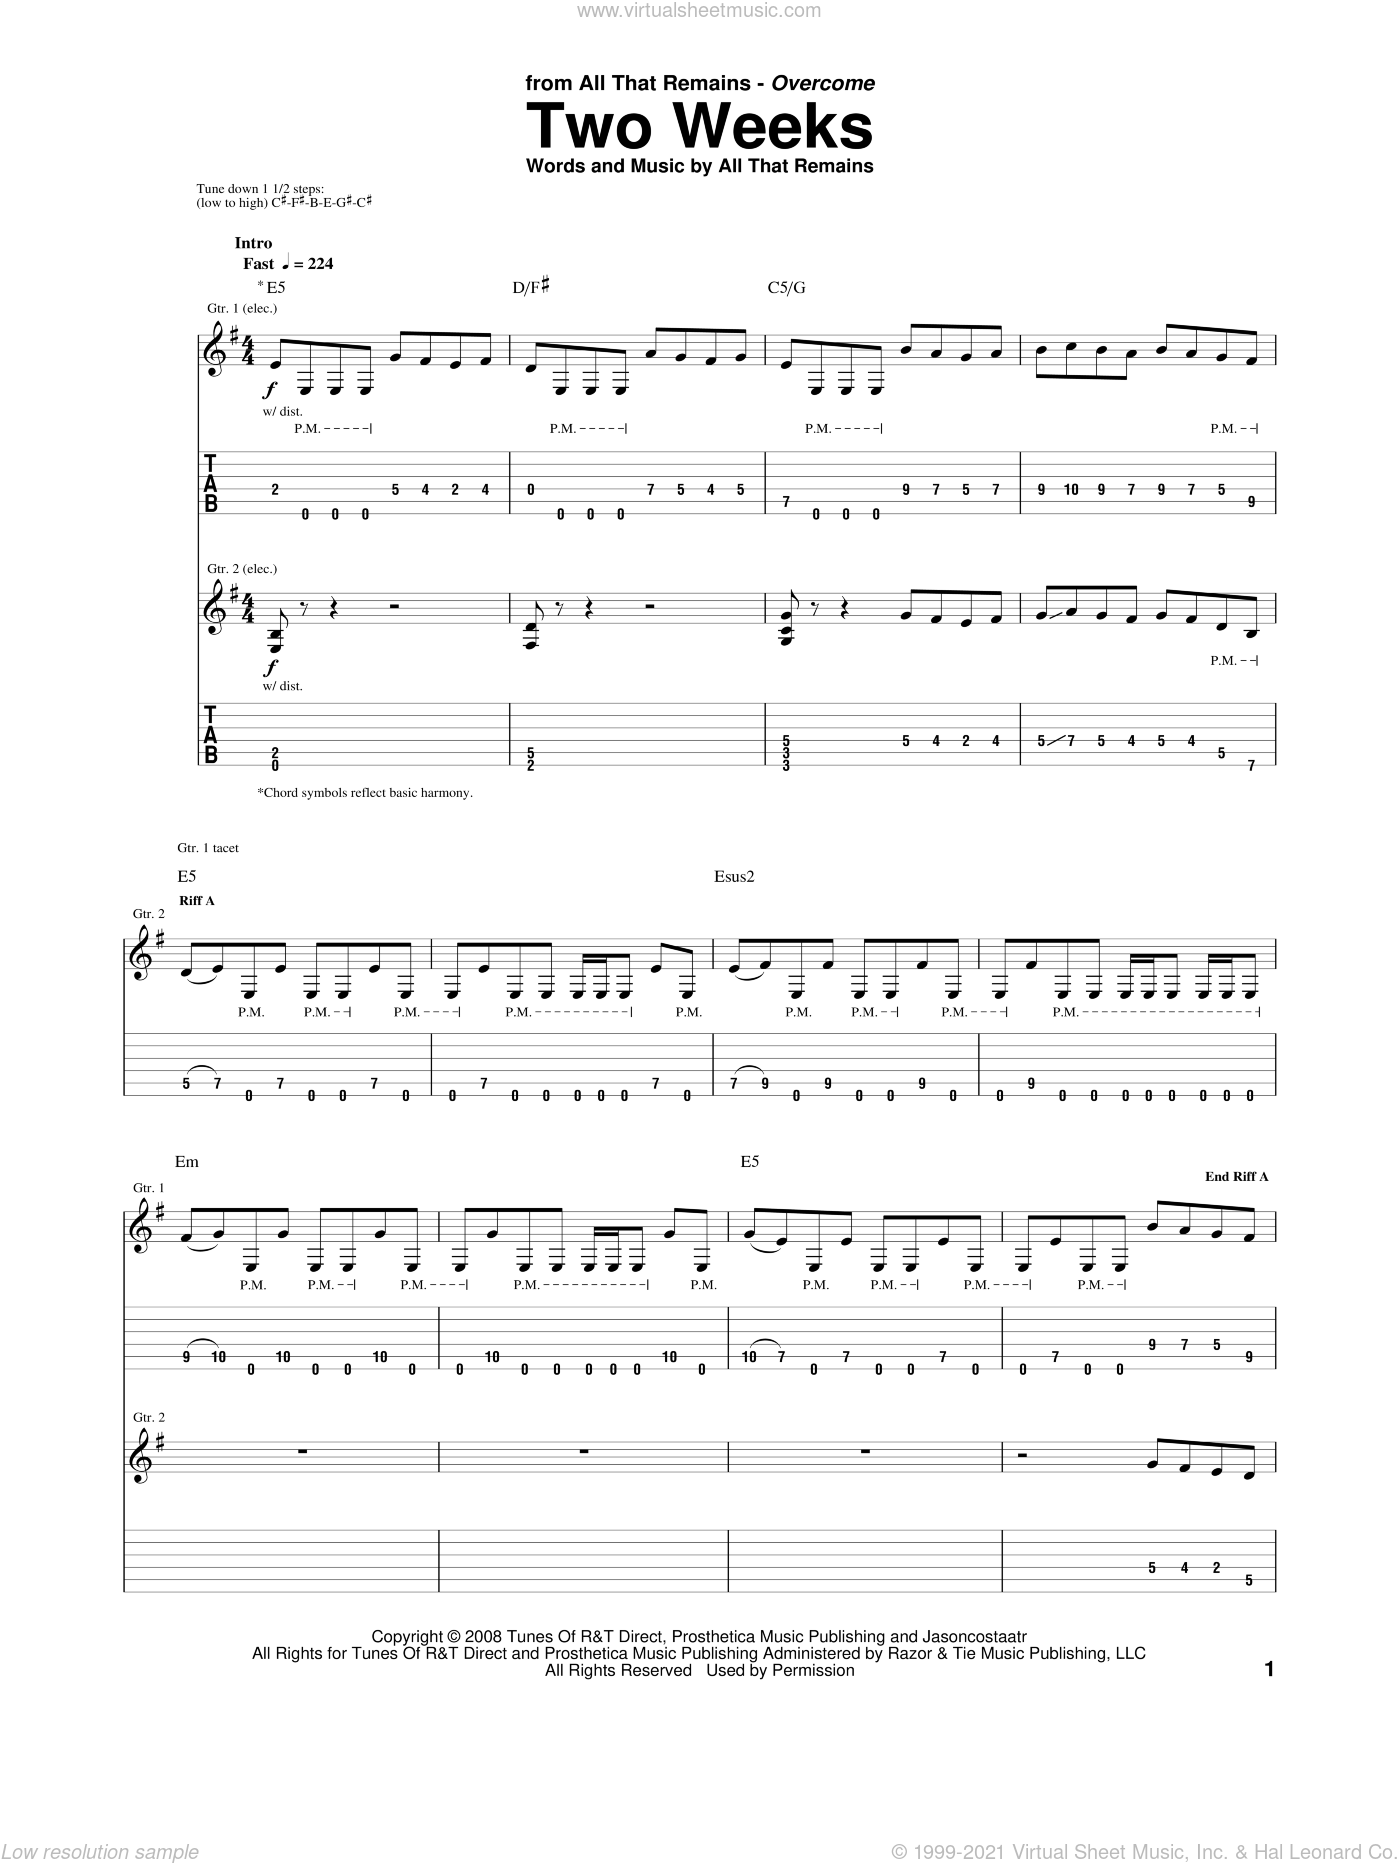 Two Weeks sheet music for guitar (tablature) by All That Remains. Score Image Preview.